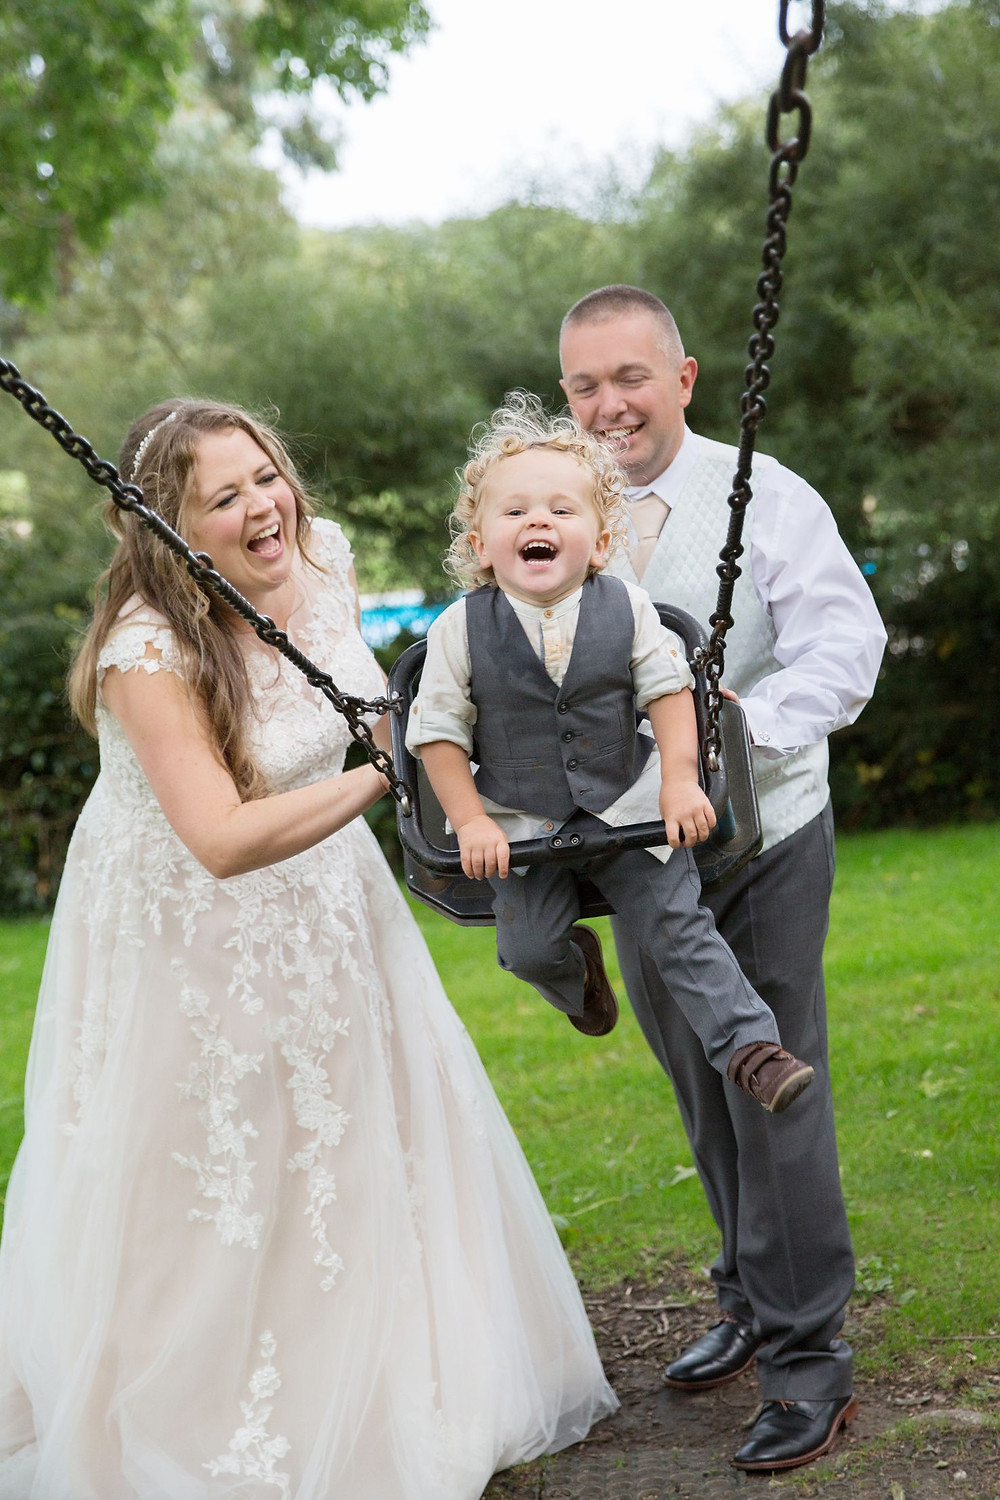 Helen England Photography | Bride and groom pushing son on a swing